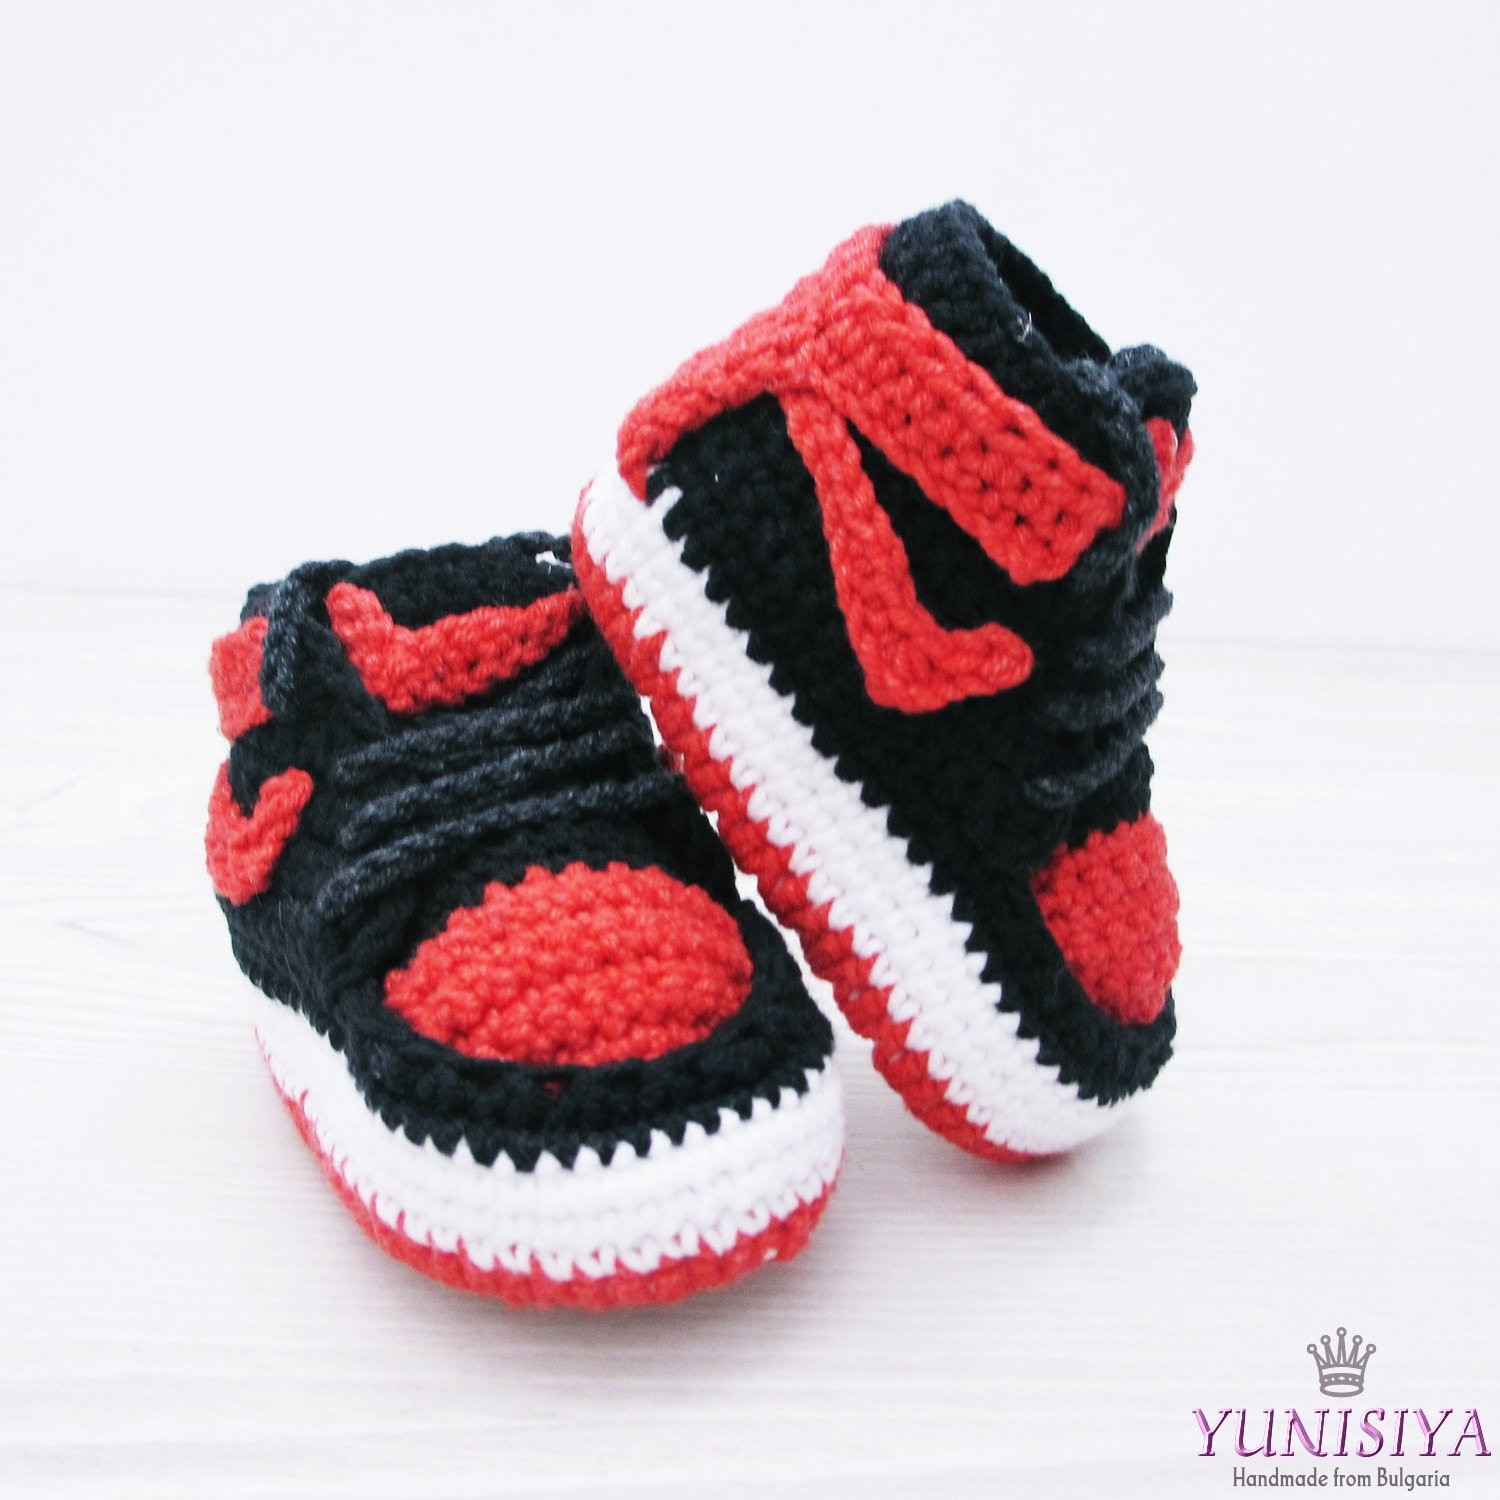 Crochet Sneakers Awesome Baby Shoes Crochet Baby Booties Air Jordan Crochet Sneakers Of Gorgeous 50 Pics Crochet Sneakers